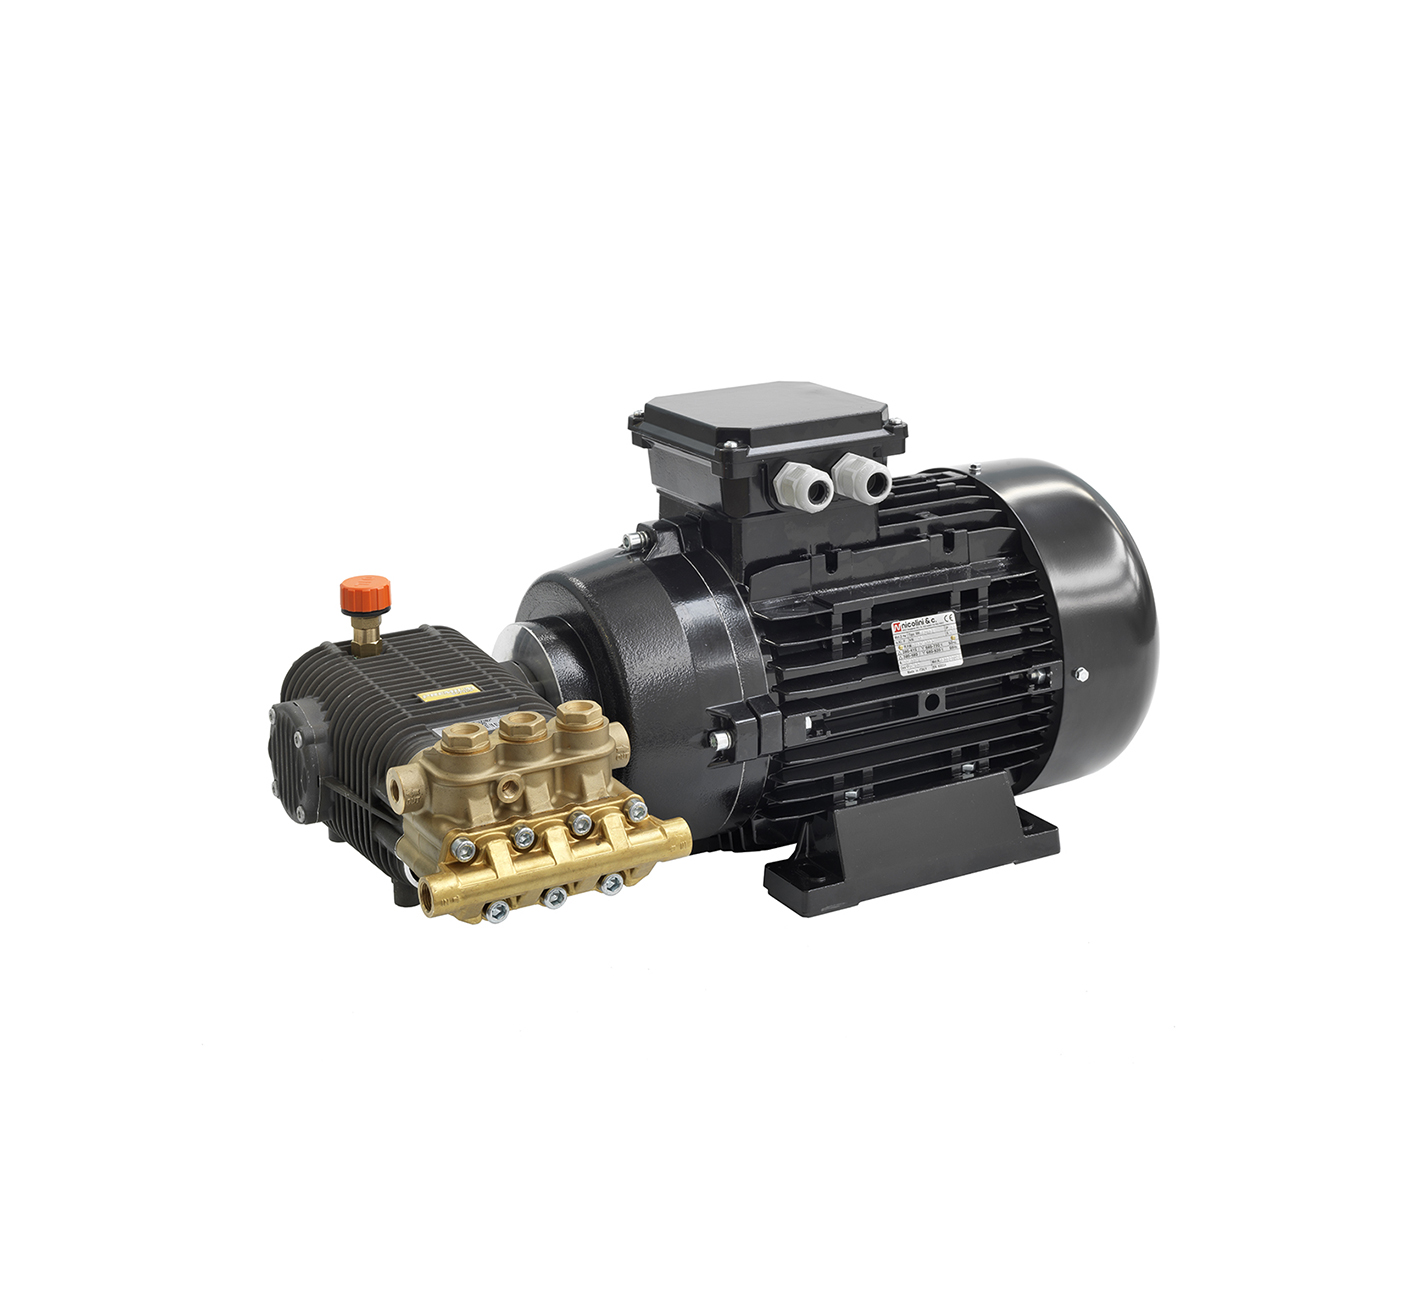 MTP TW 500 Comet Industrial Pumps